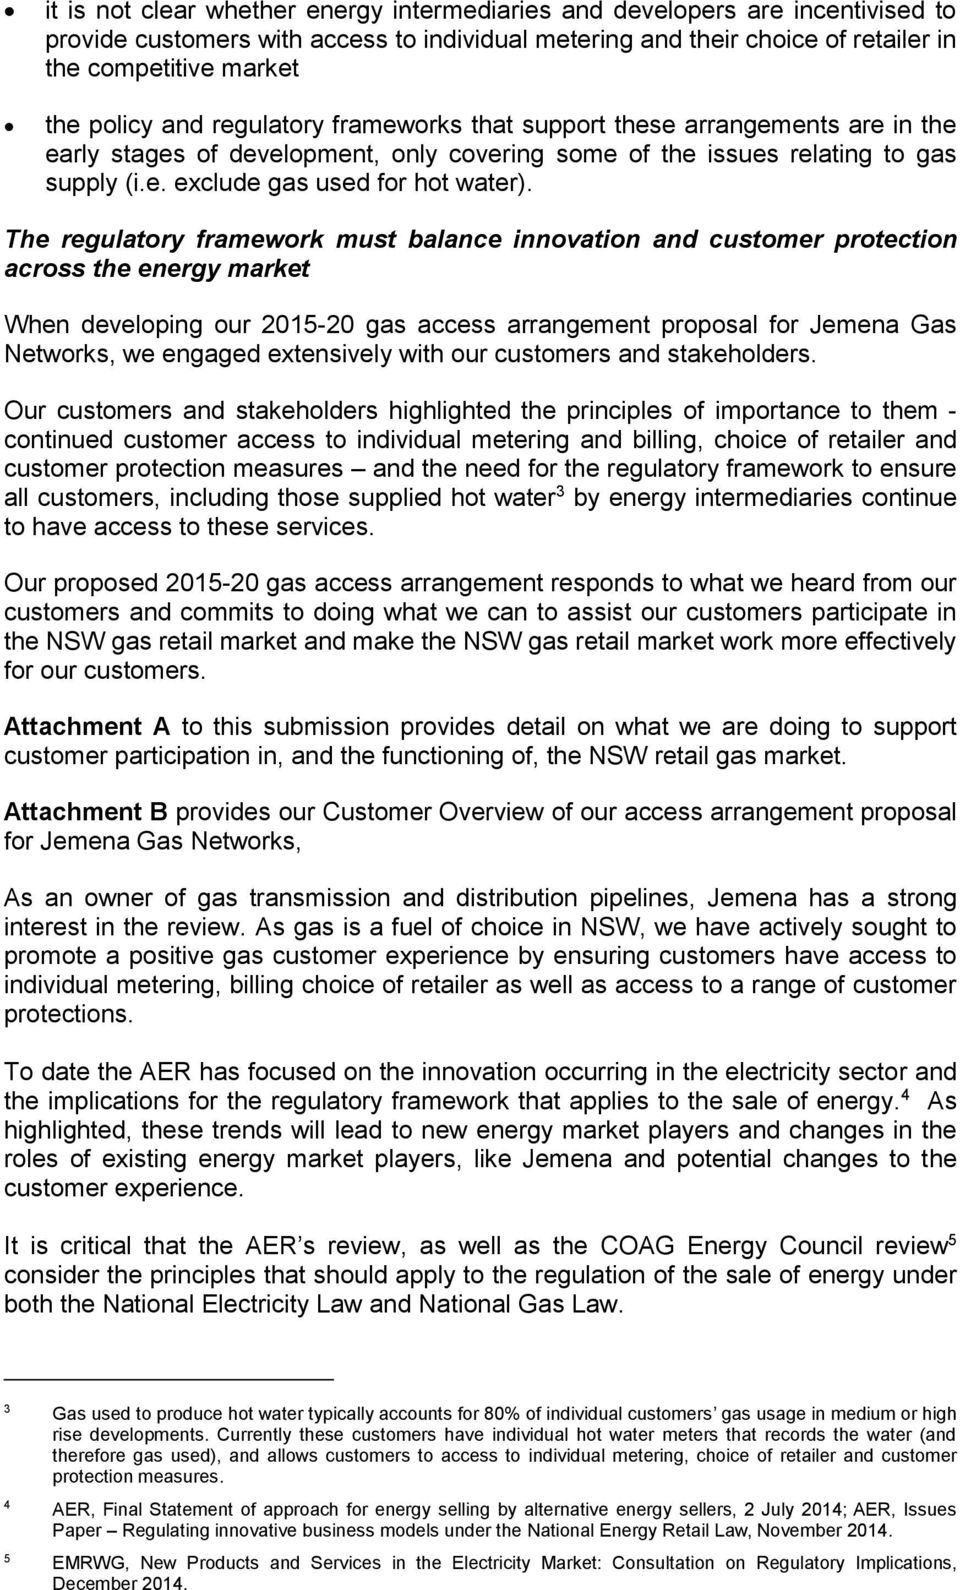 The regulatory framework must balance innovation and customer protection across the energy market When developing our 2015-20 gas access arrangement proposal for Jemena Gas Networks, we engaged